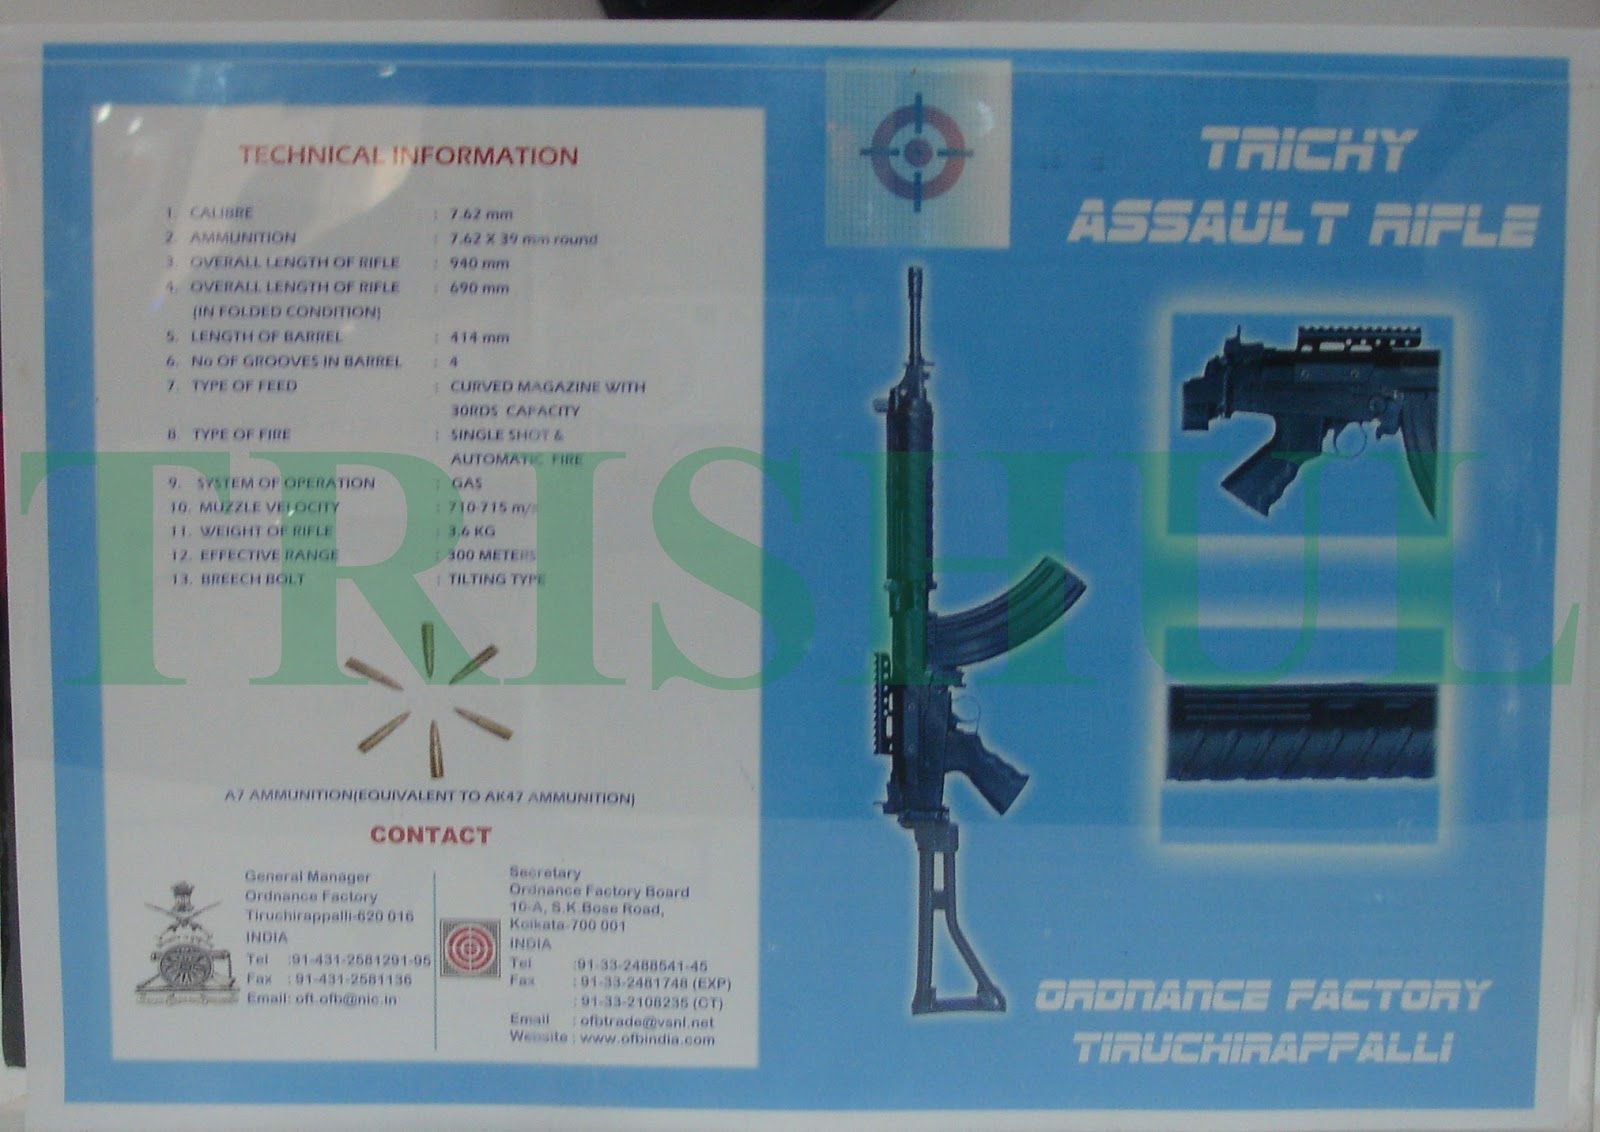 http://2.bp.blogspot.com/-MBqfGNDoRls/UvOtovOjugI/AAAAAAAAGkQ/KRk7SkntxqE/s1600/OFB-Developed+Trichy+Assault+Rifle.jpg